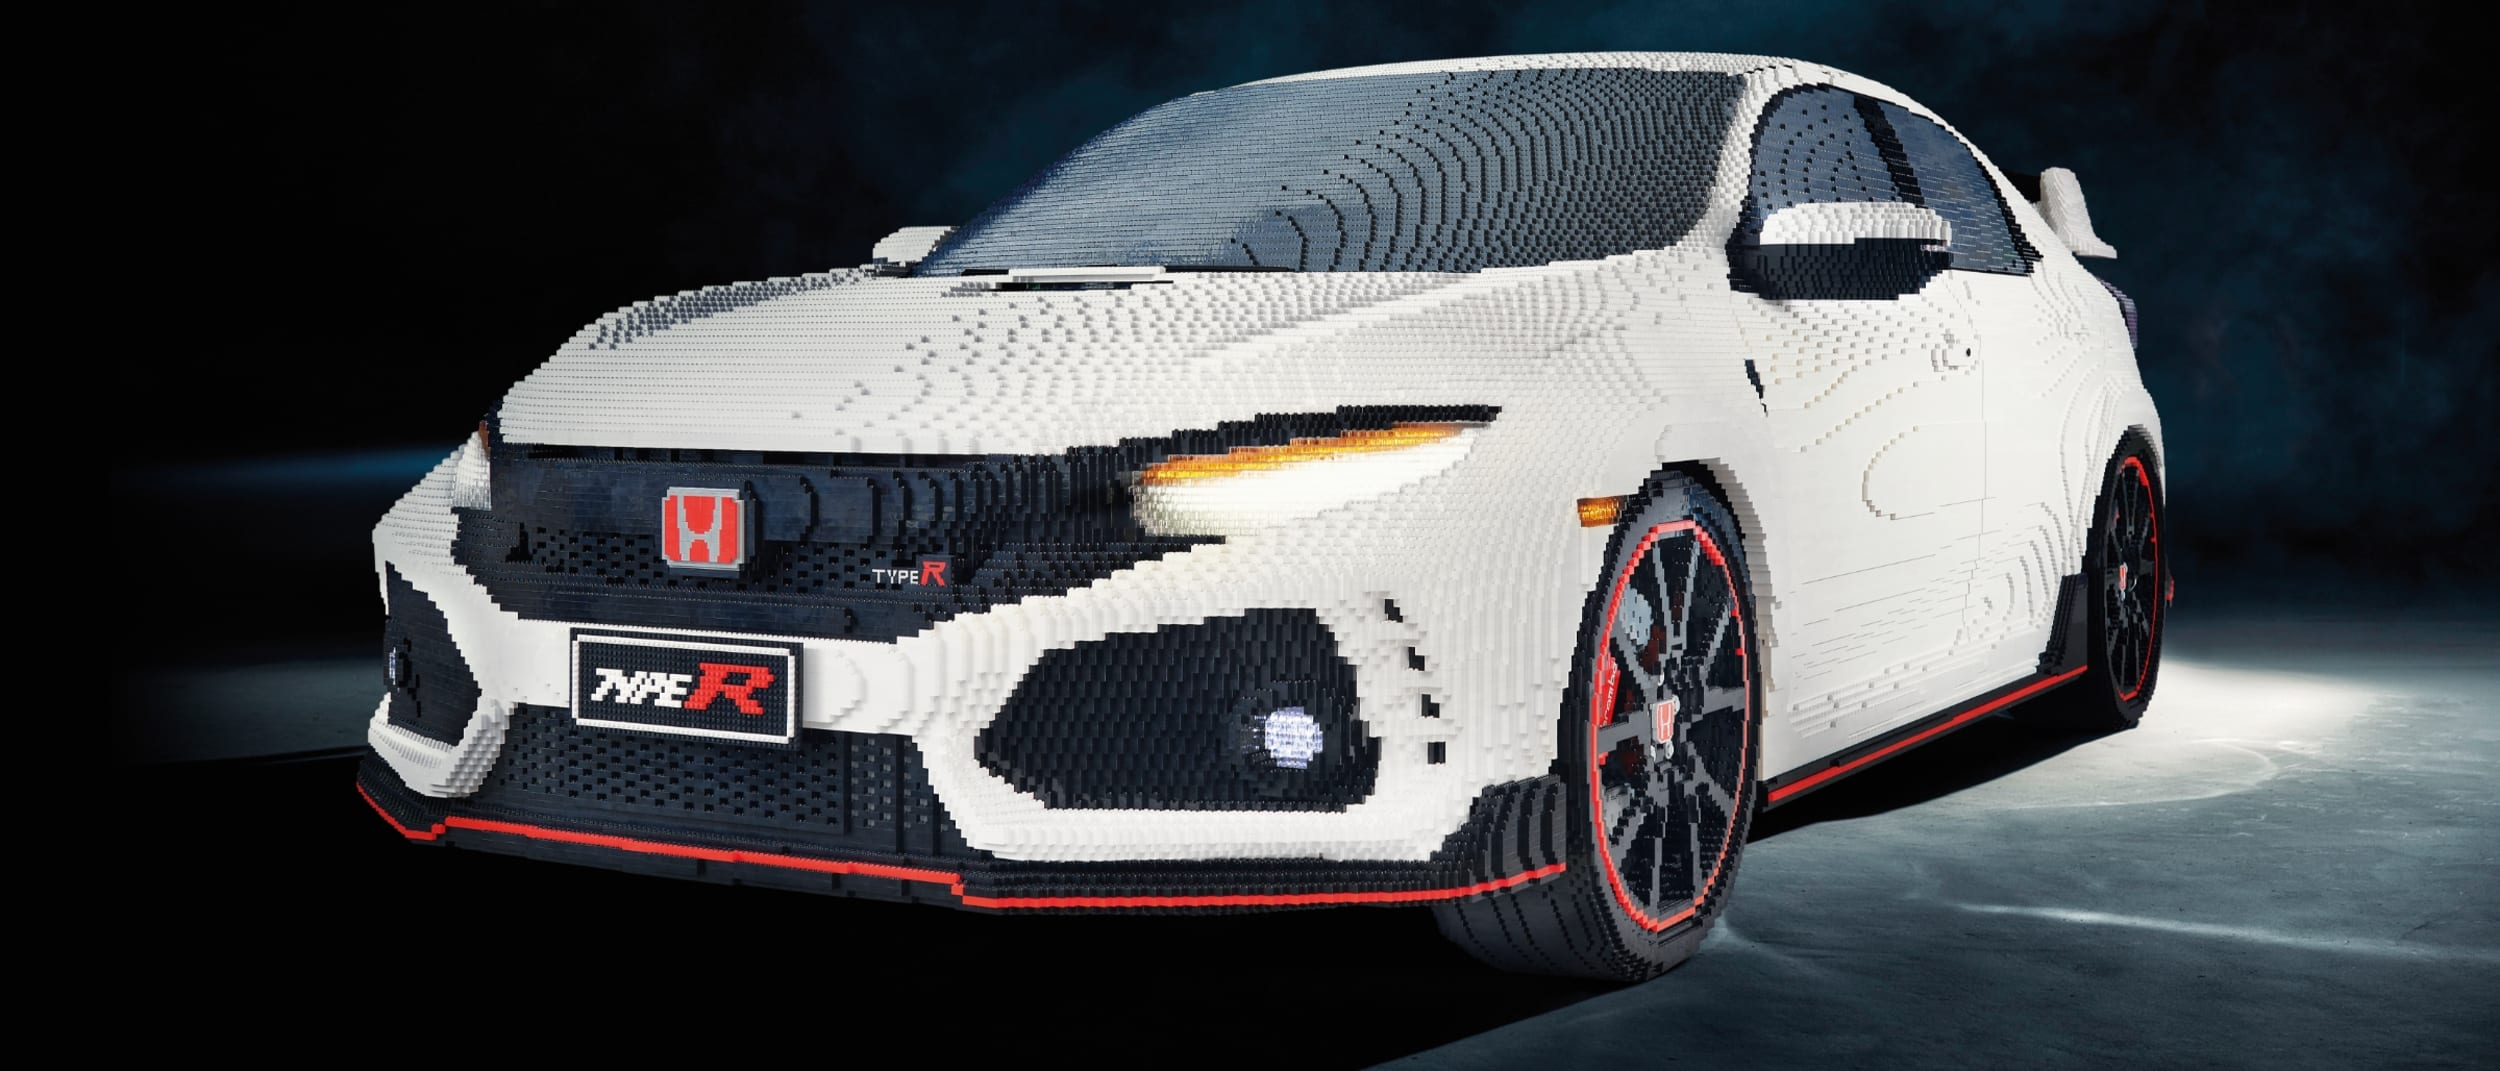 Honda has teamed up with LEGO® to bring you this masterpiece